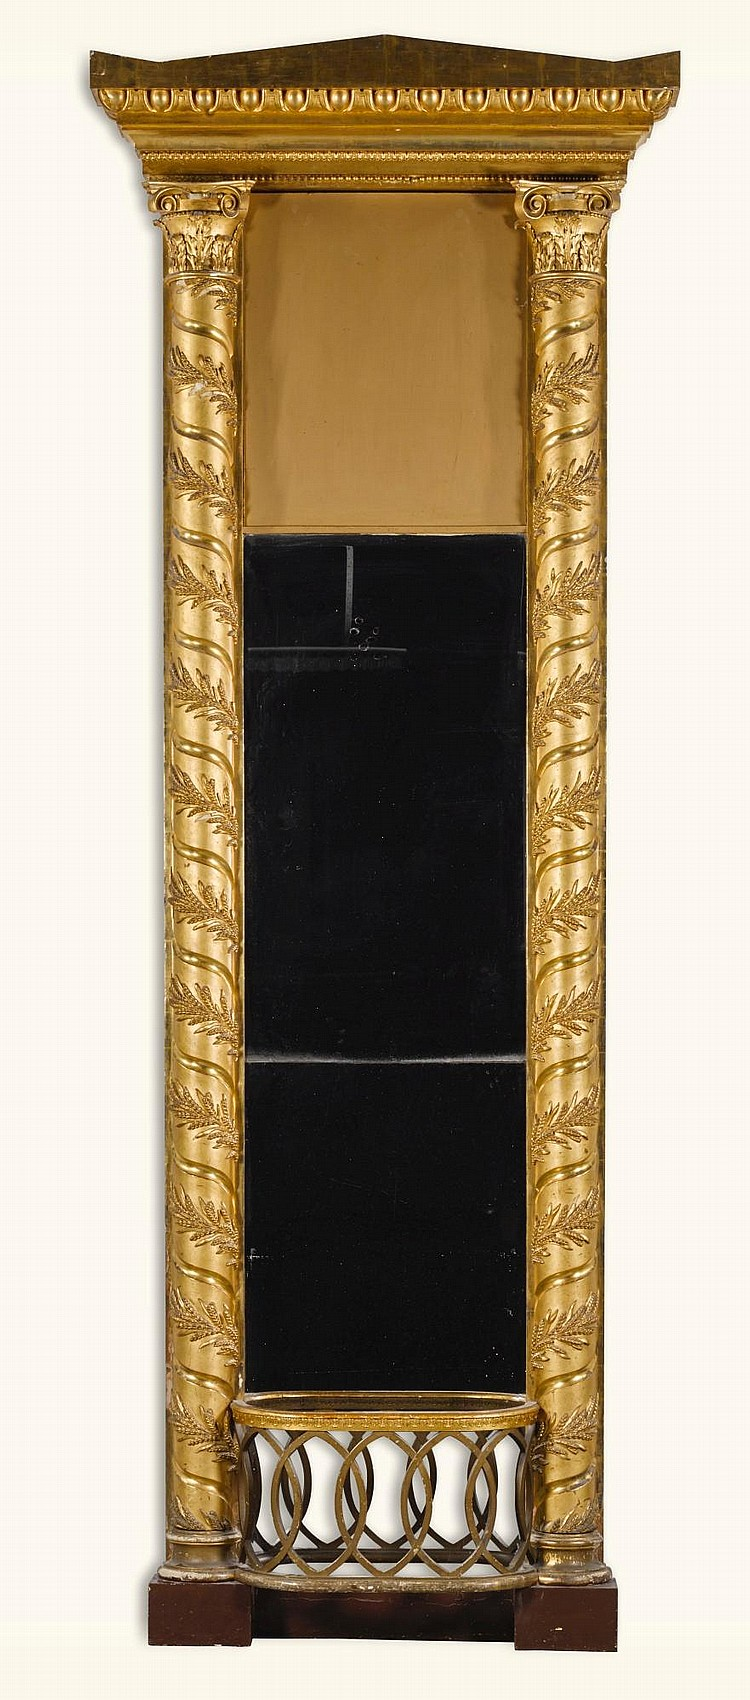 A MONUMENTAL NORTH GERMAN NEOCLASSICAL CARVED GILTWOOD MIRROR, LATE 18TH/EARLY 19TH CENTURY |